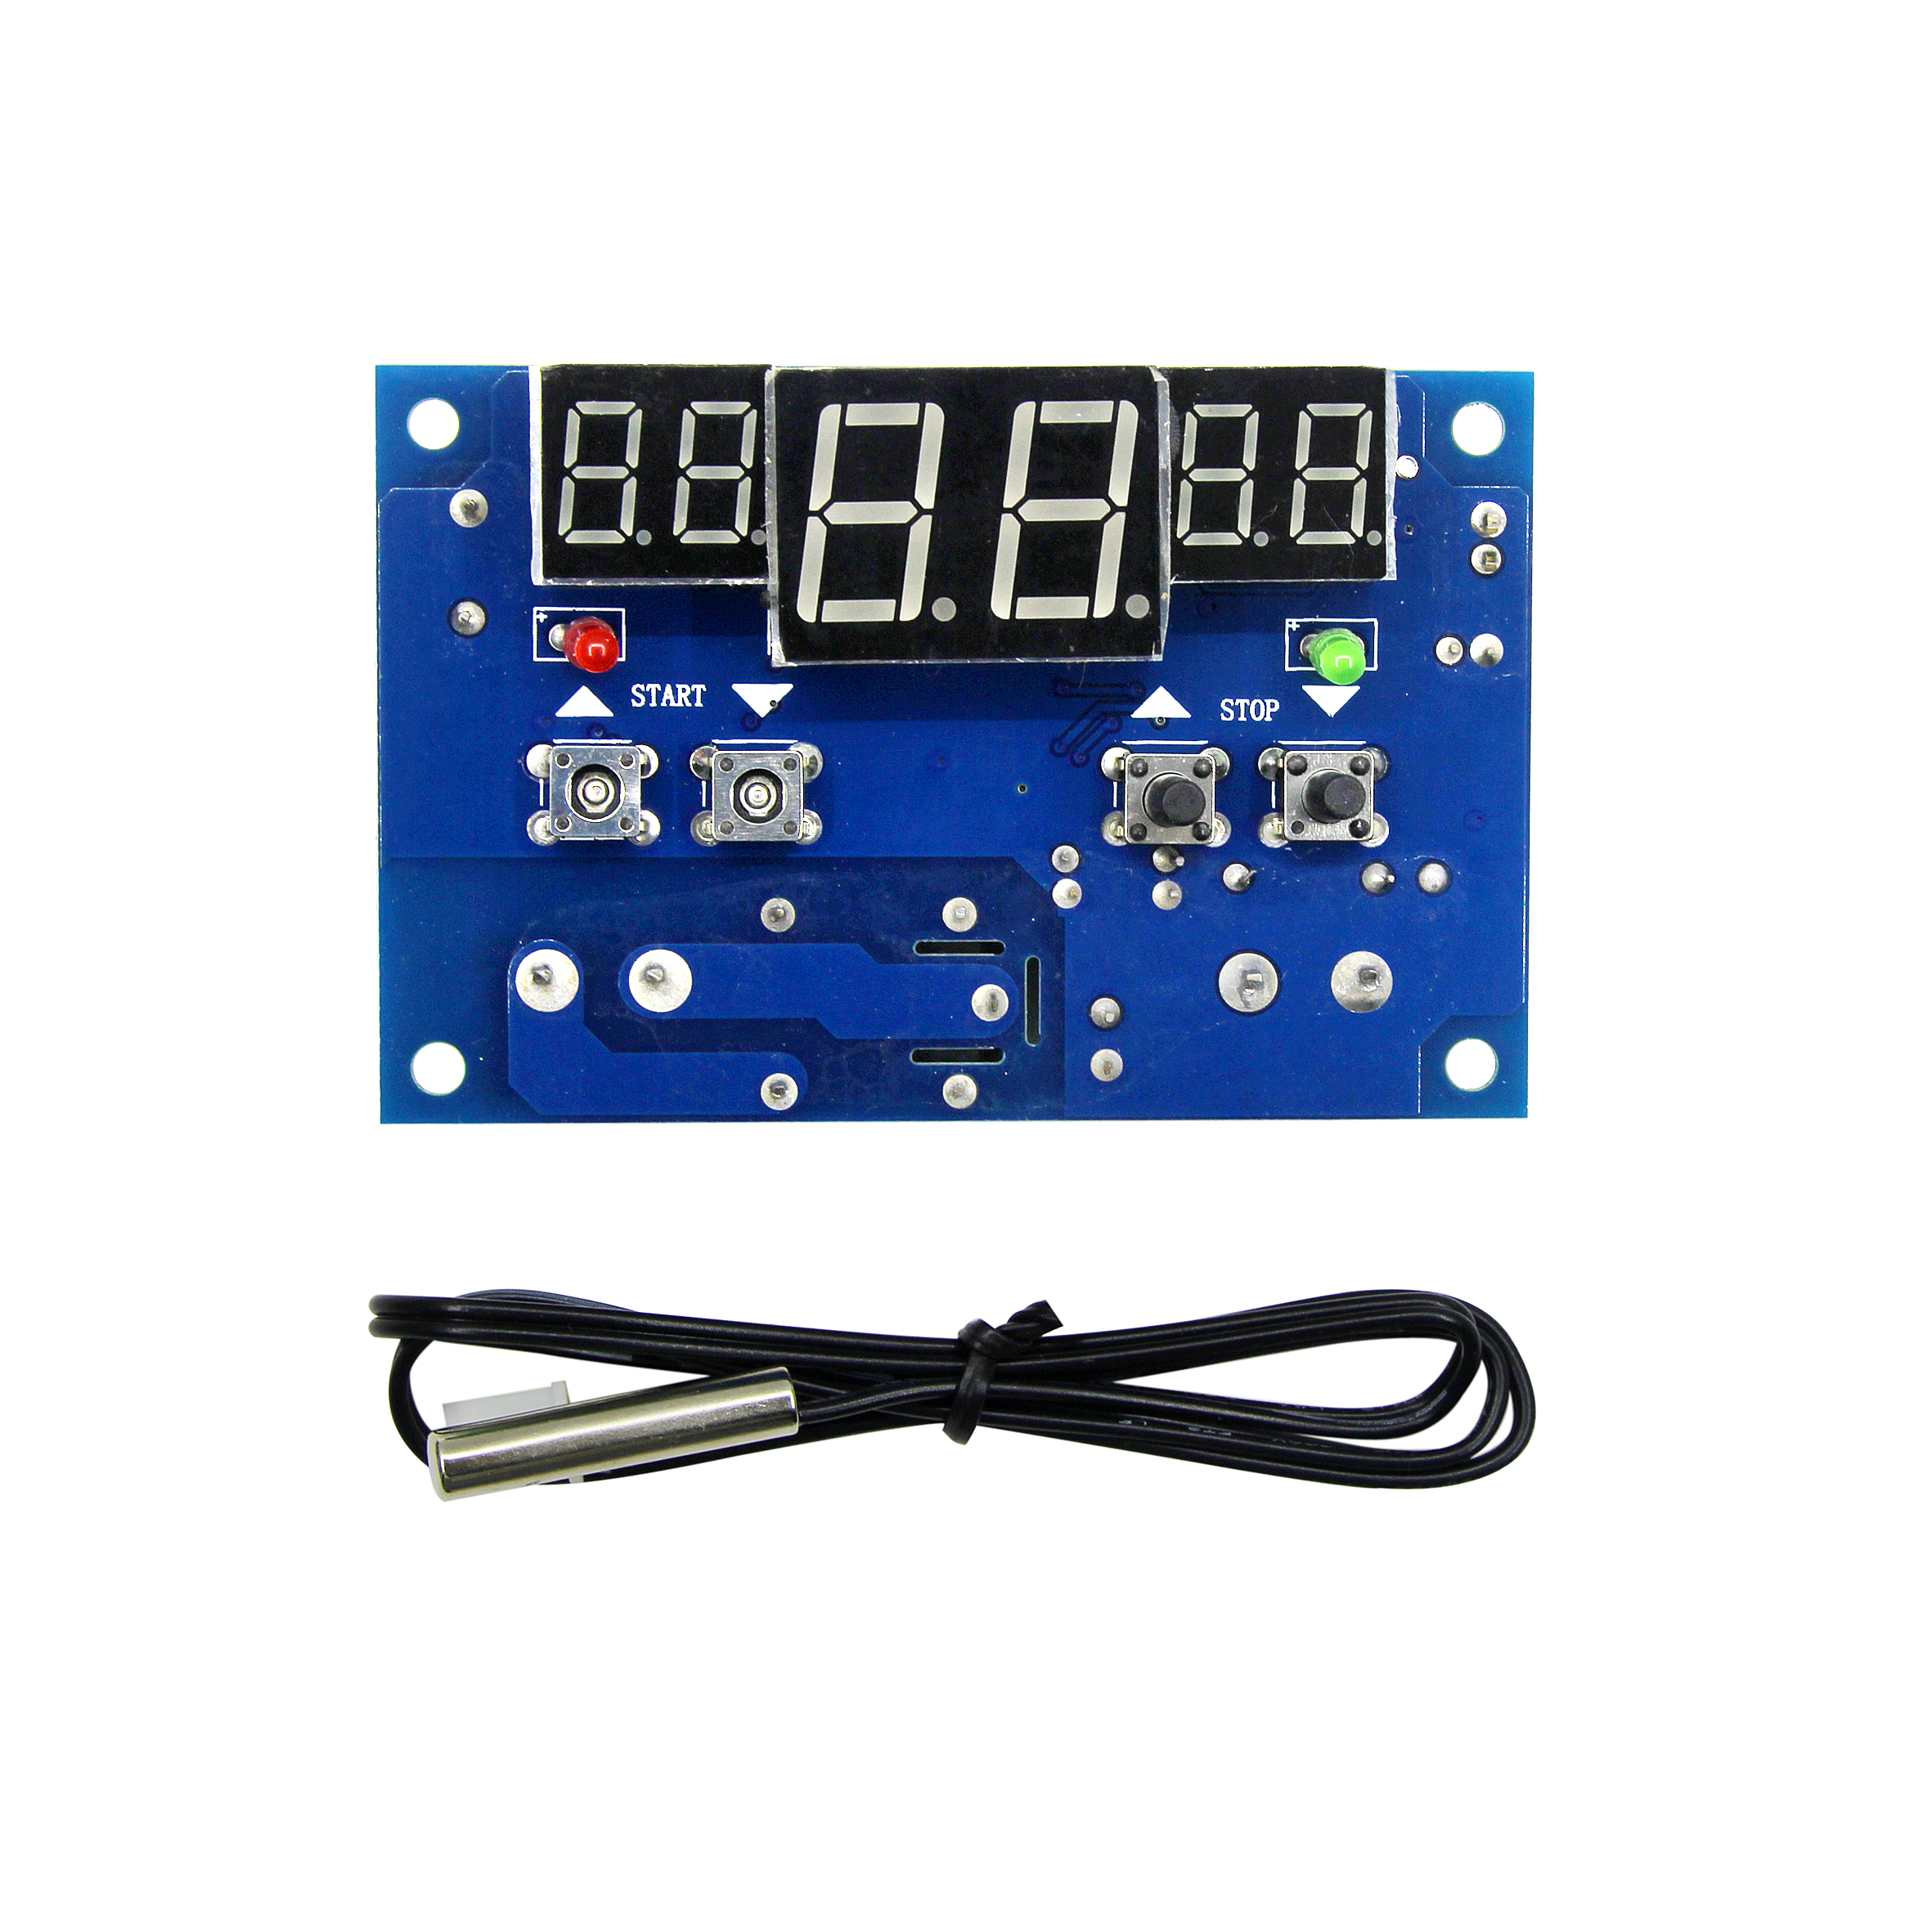 XH-<font><b>W1401</b></font> <font><b>DC12V</b></font> Digital Display <font><b>Thermostat</b></font> Intelligent Temperature Controller Thermometer Controller image